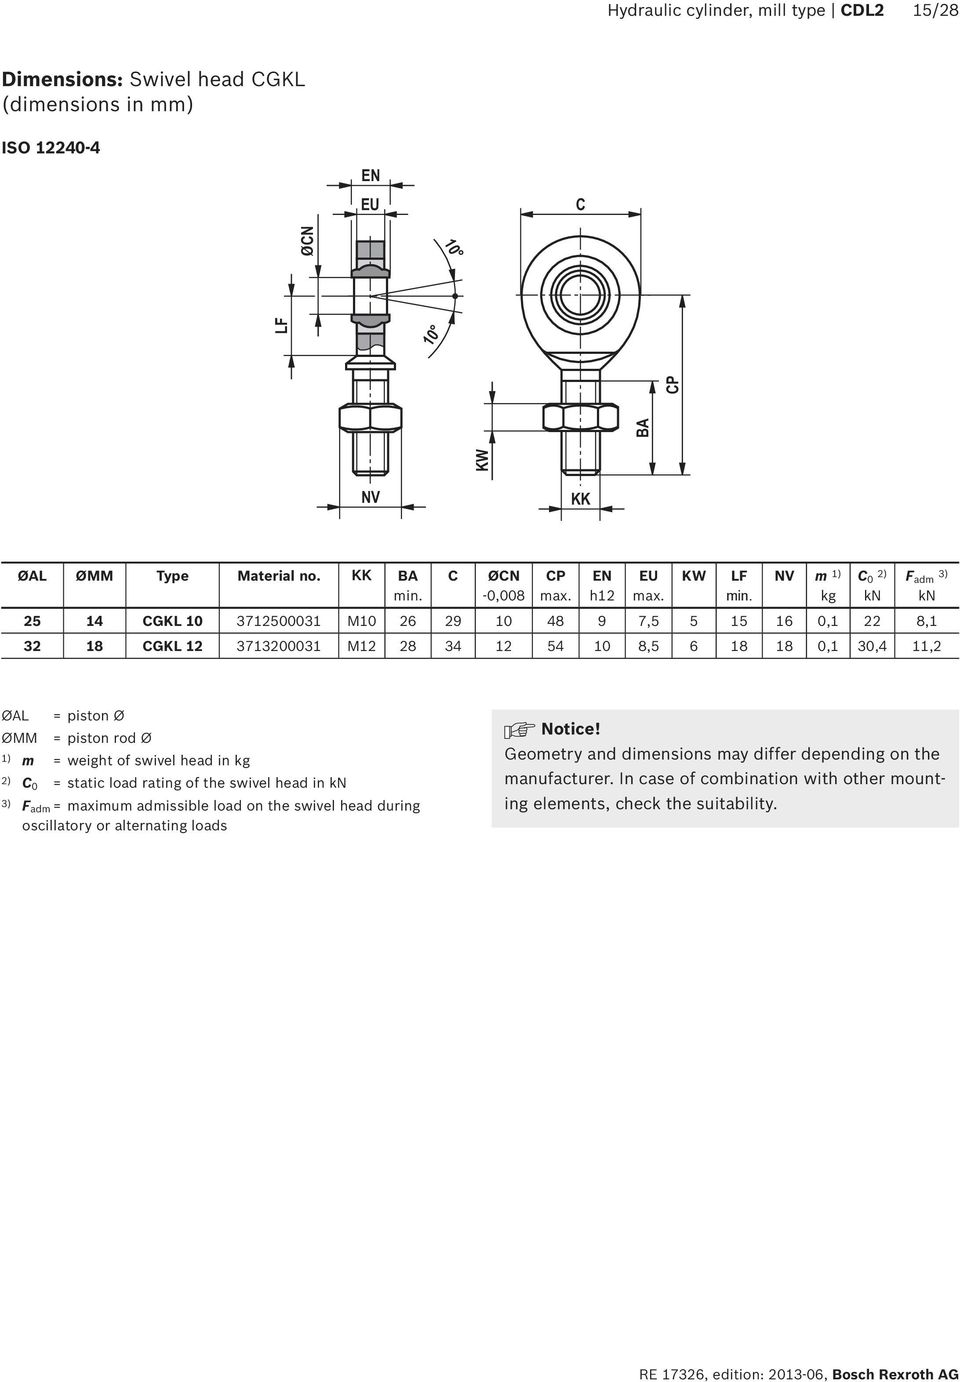 piston rod Ø 1) m = weight of swivel head in kg 2) C 0 = static load rating of the swivel head in kn 3) F adm = maximum admissible load on the swivel head during oscillatory or alternating